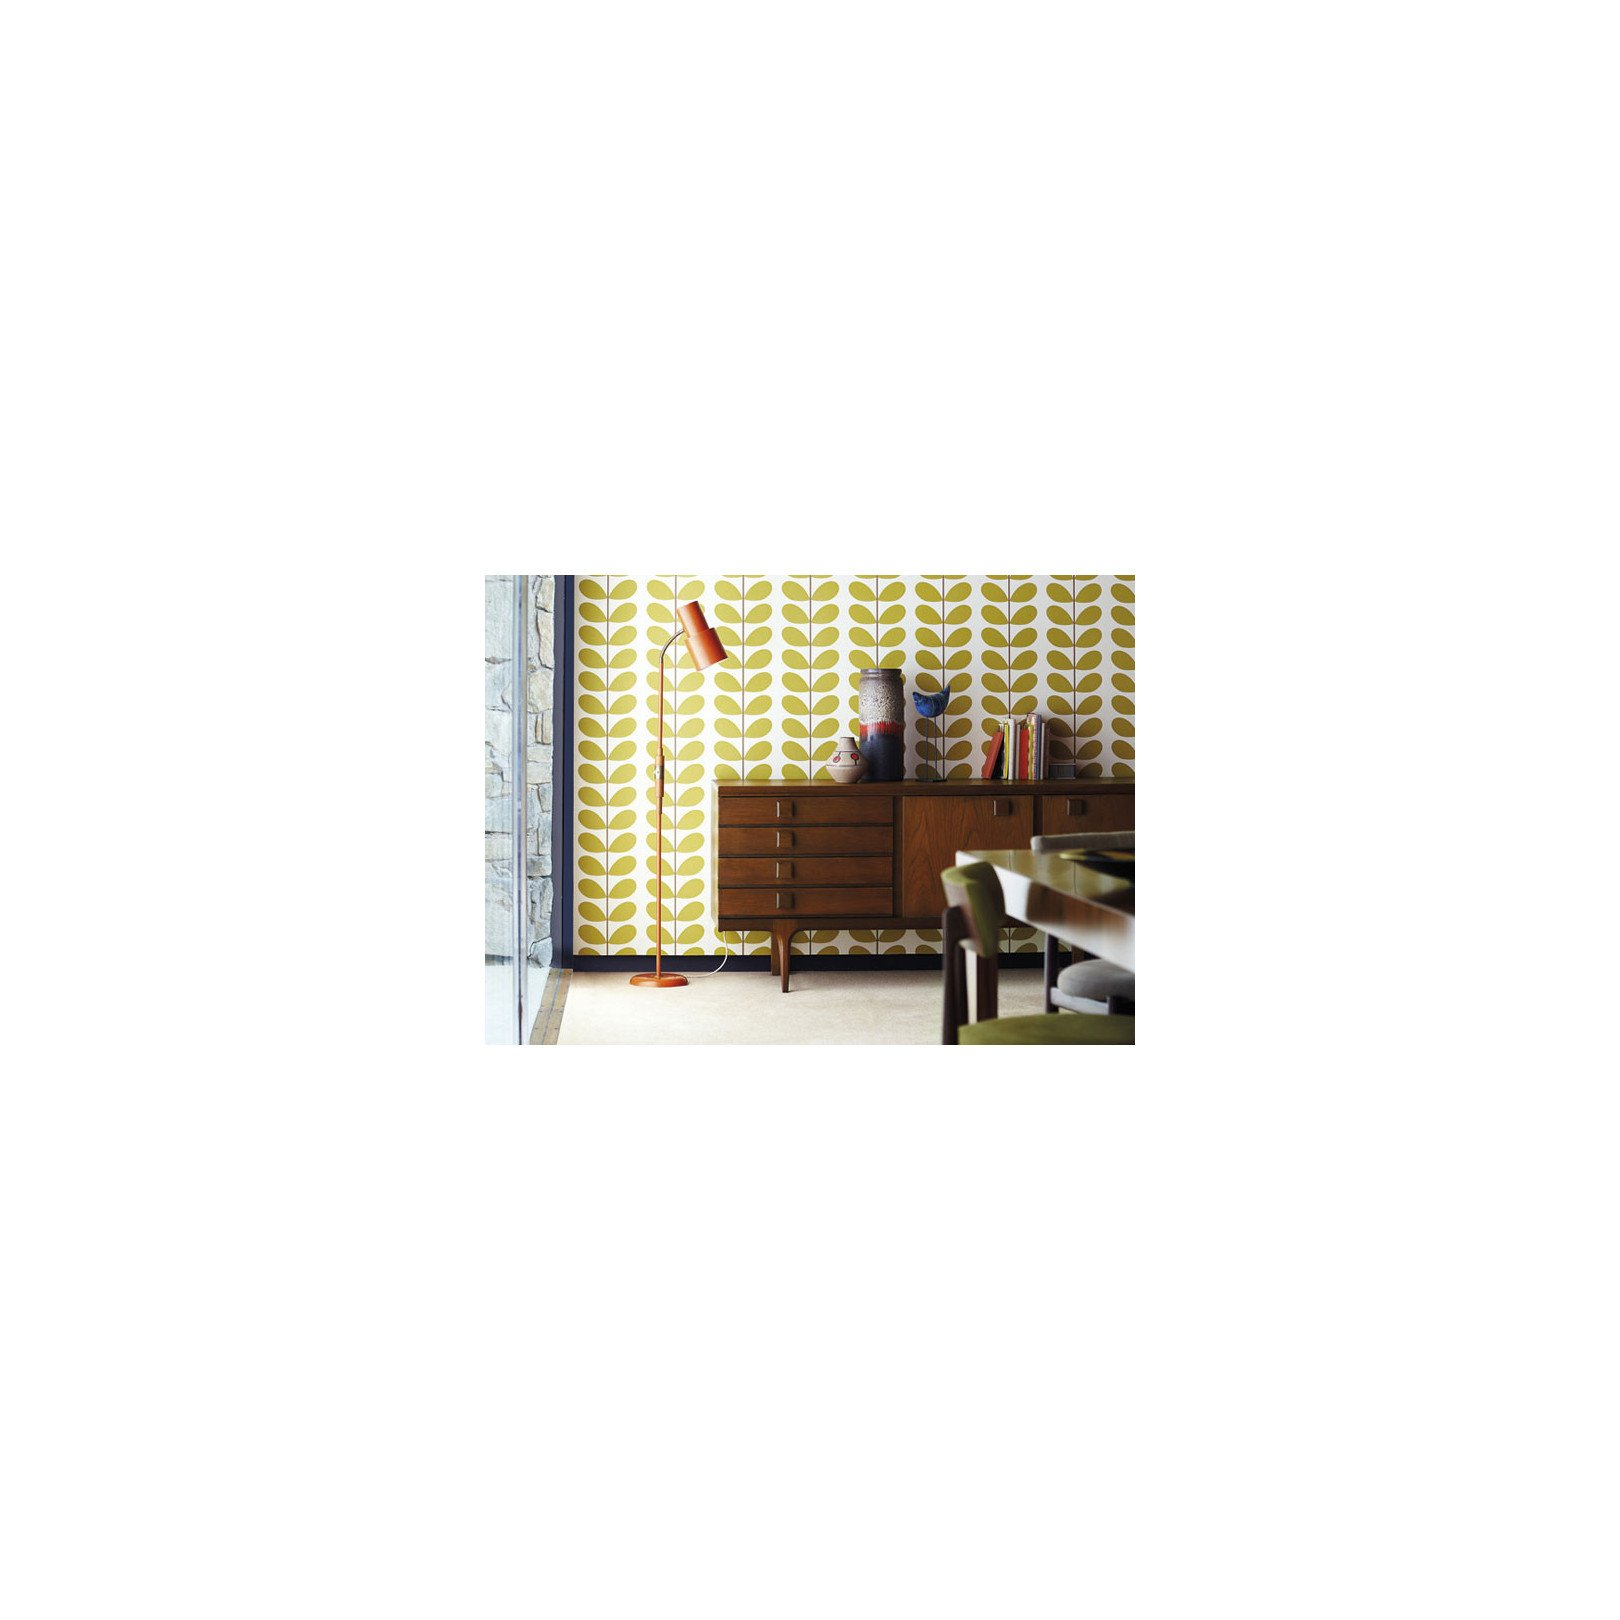 papier peint feuillage vert d 39 eau classic stem de orla kiely. Black Bedroom Furniture Sets. Home Design Ideas